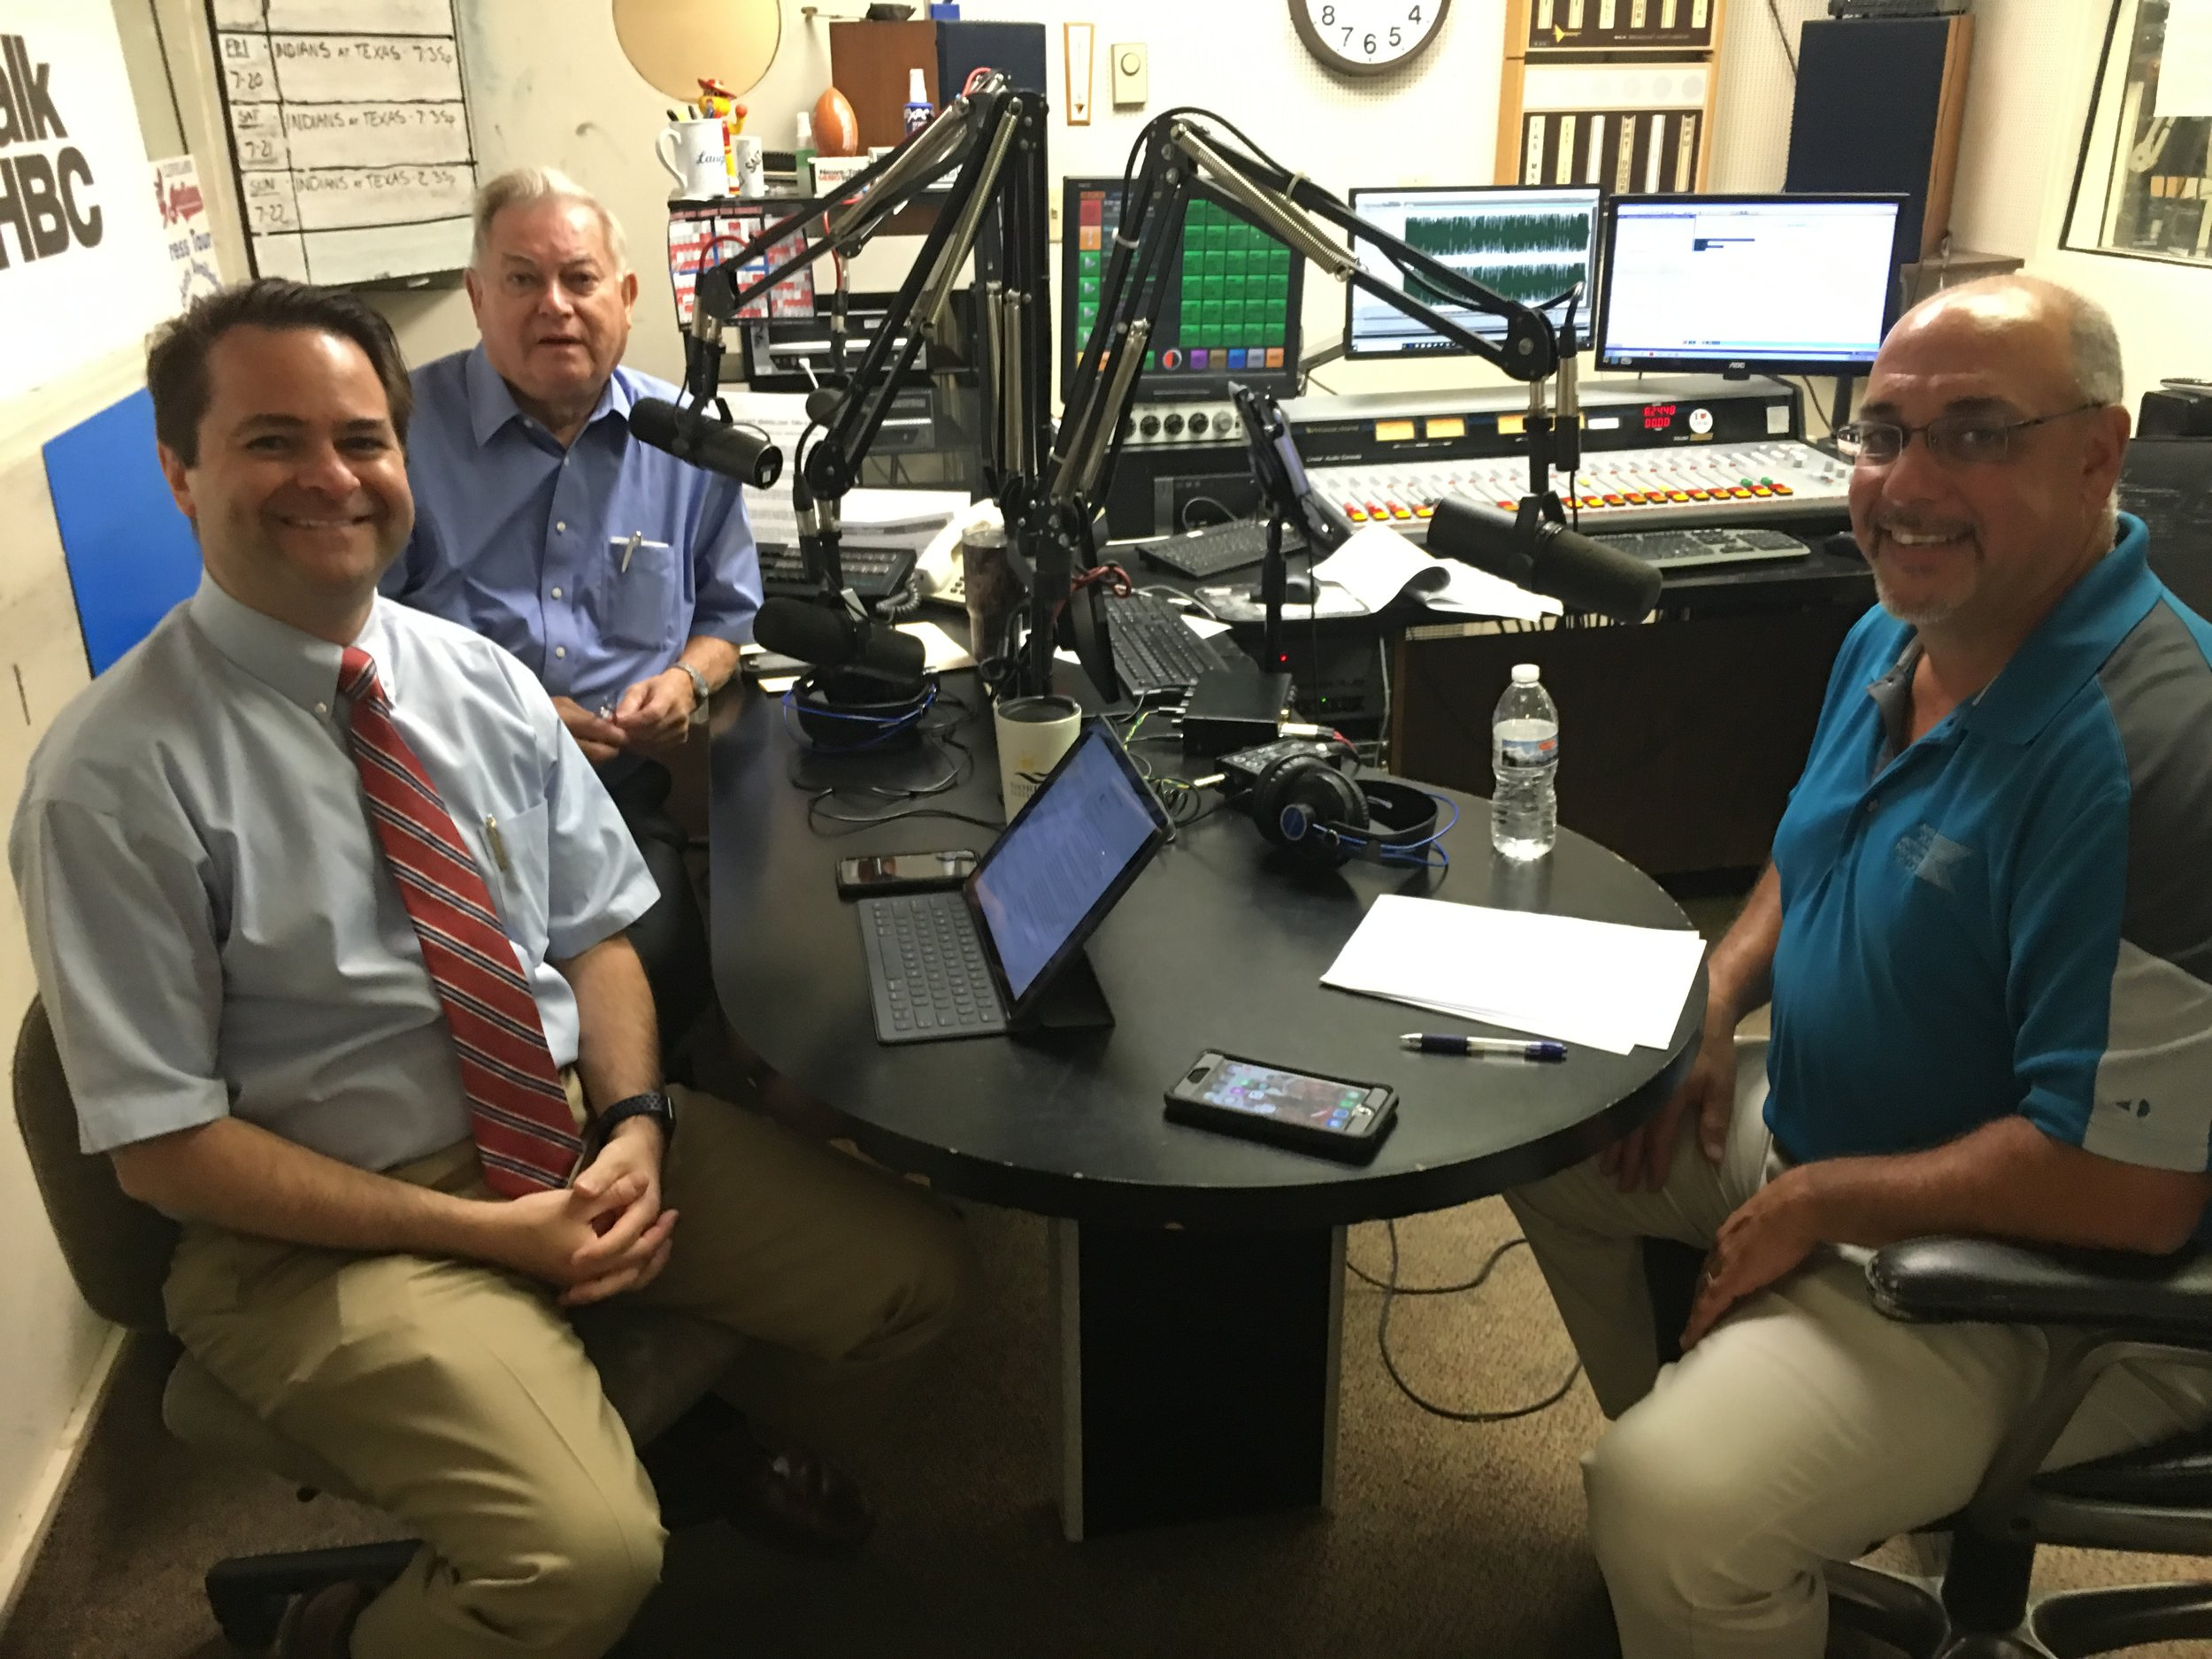 L-R: Hosts and pharmacists, Brad and Paul White talk with Jim Contini, attorney for Krugliak, Wilkins, Griffiths & Doughtery Co., LPA